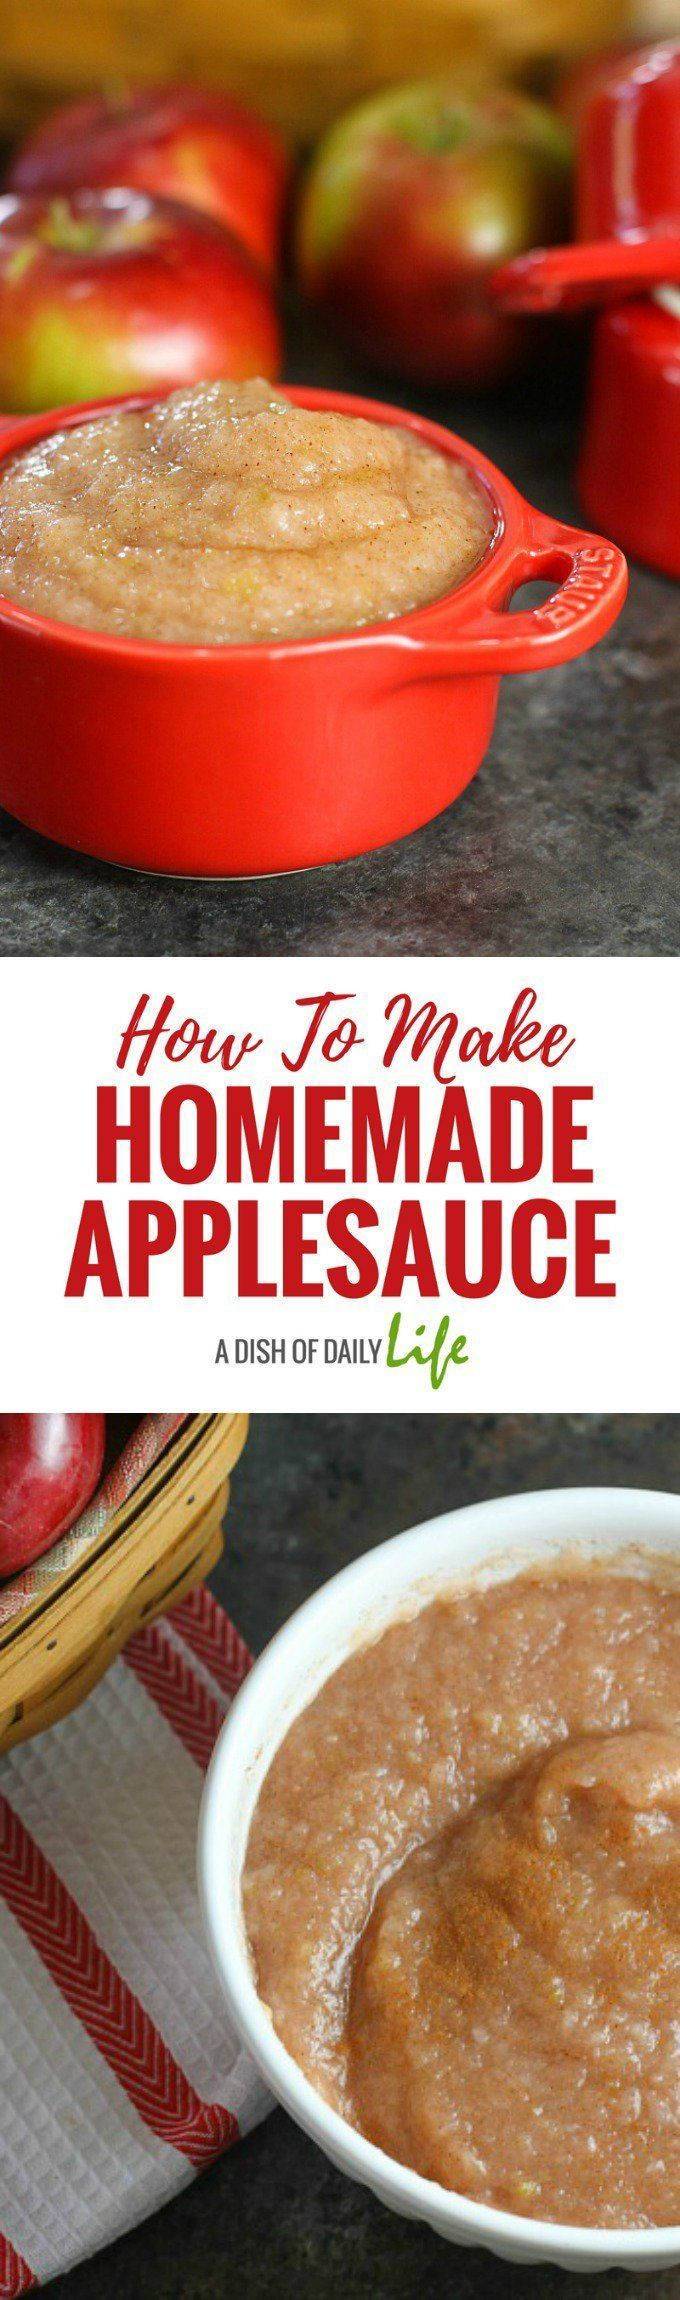 You're going to love this easy homemade applesauce recipe...two ingredients and water is all you need! #applesauce #apples